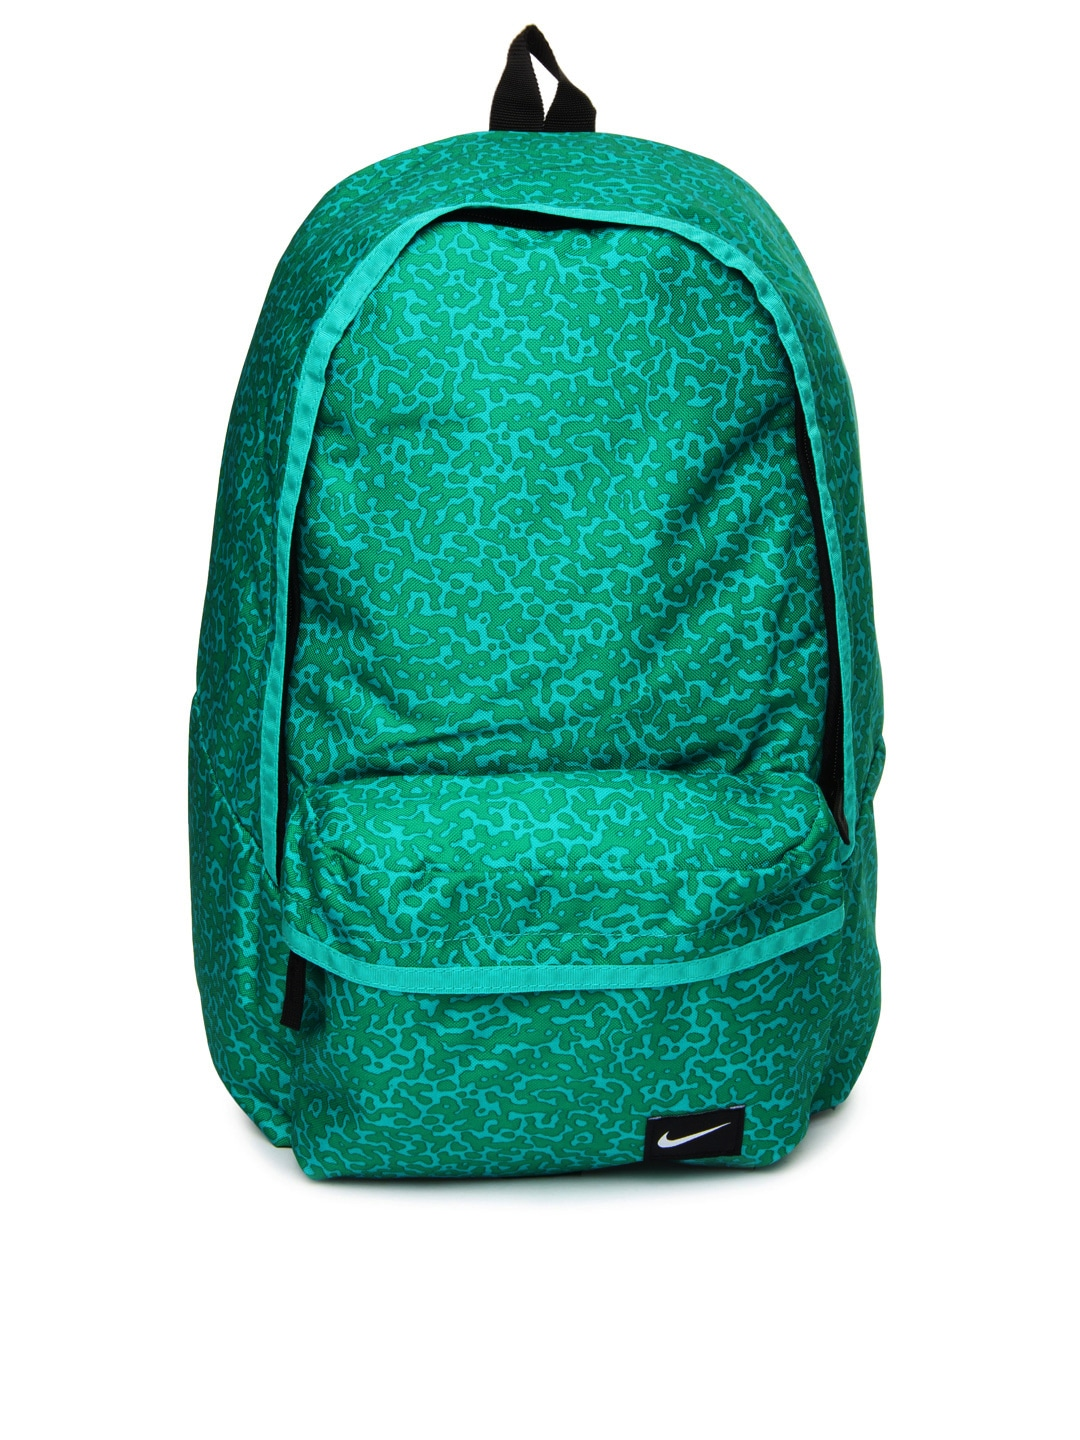 f7af5a4dc720 nike original backpack cheap   OFF46% The Largest Catalog Discounts